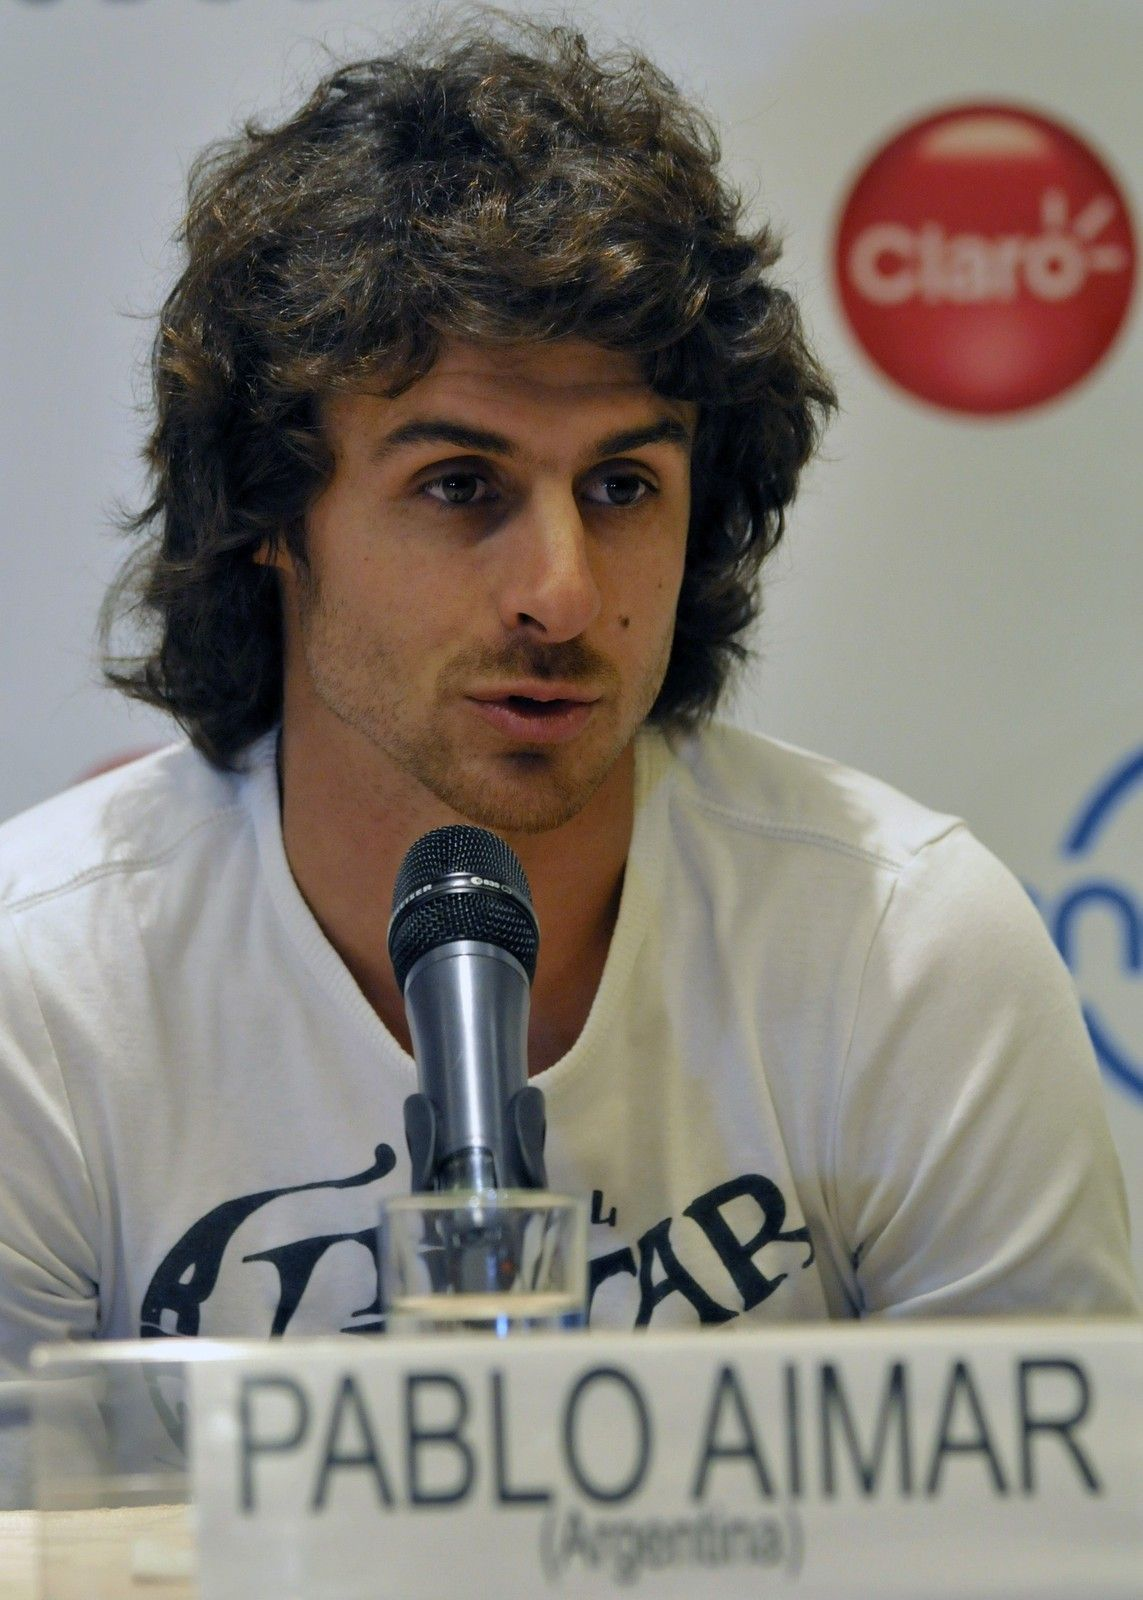 Argentine footballer Pablo Aimar speaks during a press conference on July 1, 2013 in Lima, Peru, on the eve of the exhibition game between Argentine Lionel Messi and friends' team and Brazilian idol Neymar's team.